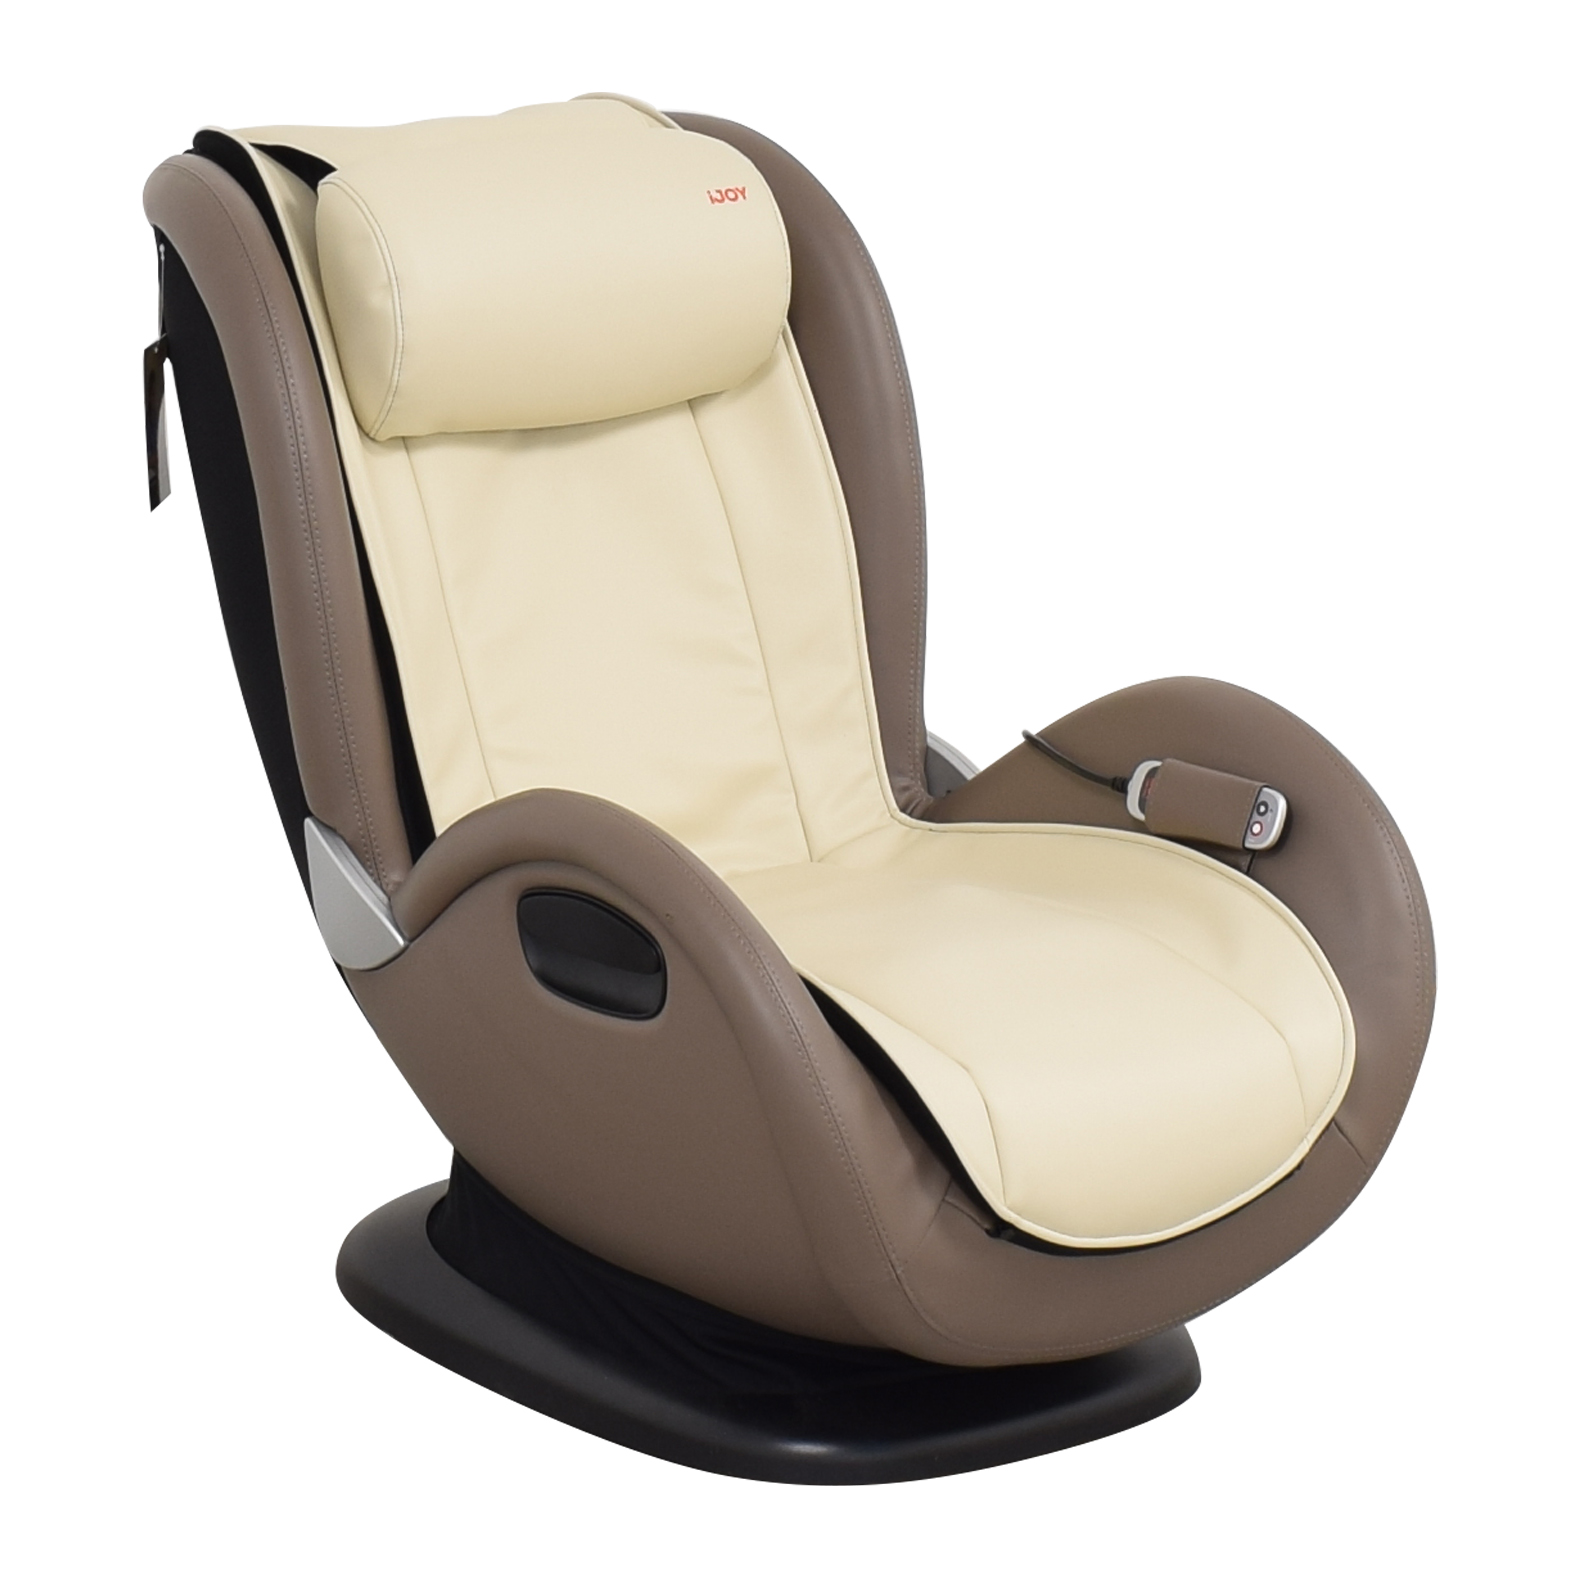 Human Touch Human Touch iJOY Massage Chair 4.0 ma